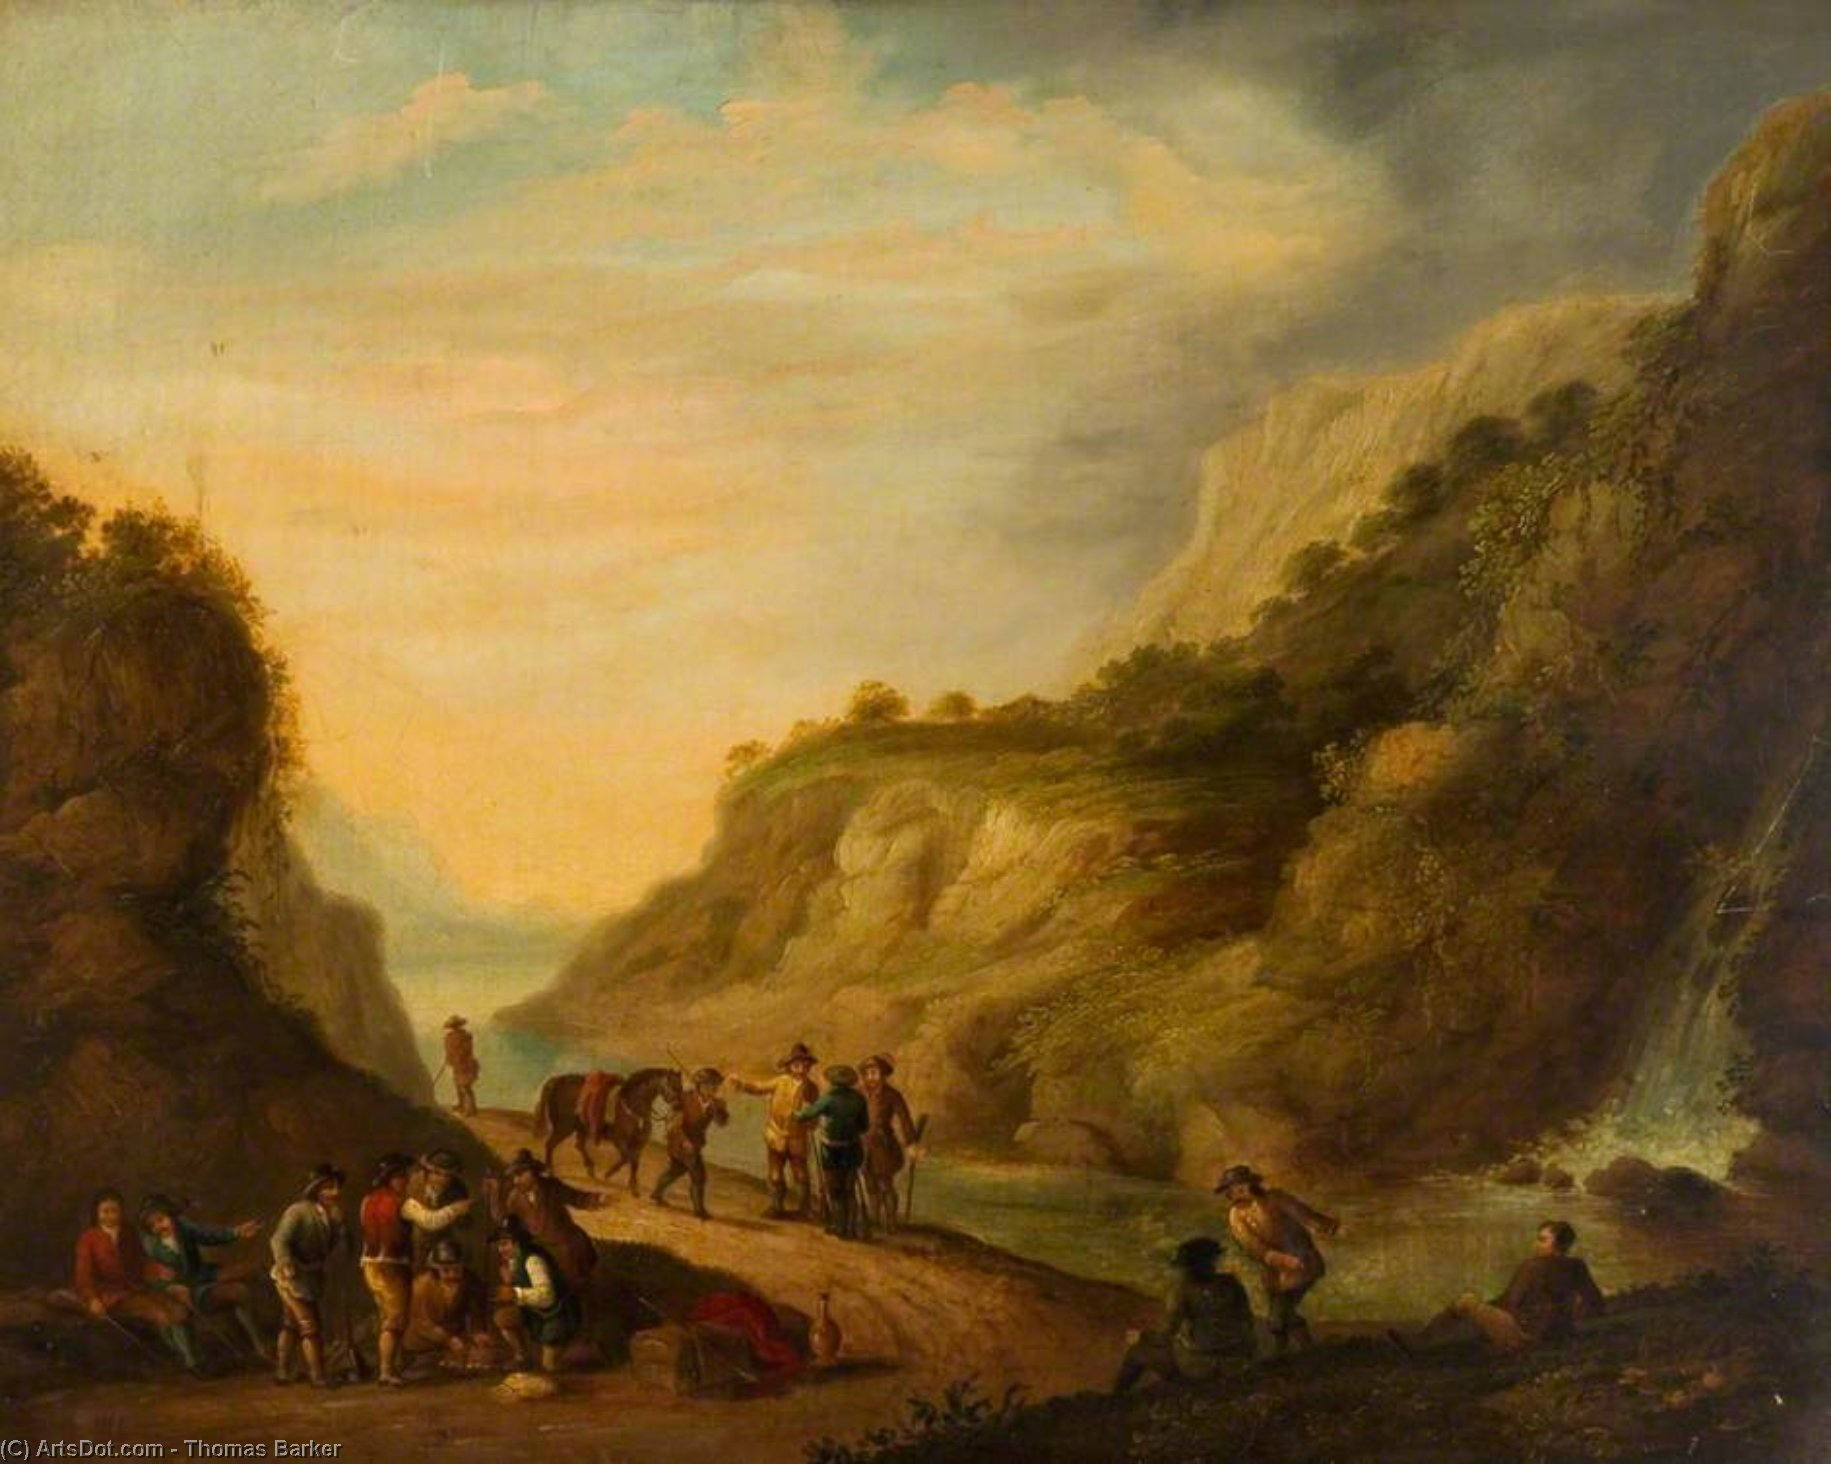 The Smugglers' Rendezvous by Thomas Barker (1769-1847, United States)